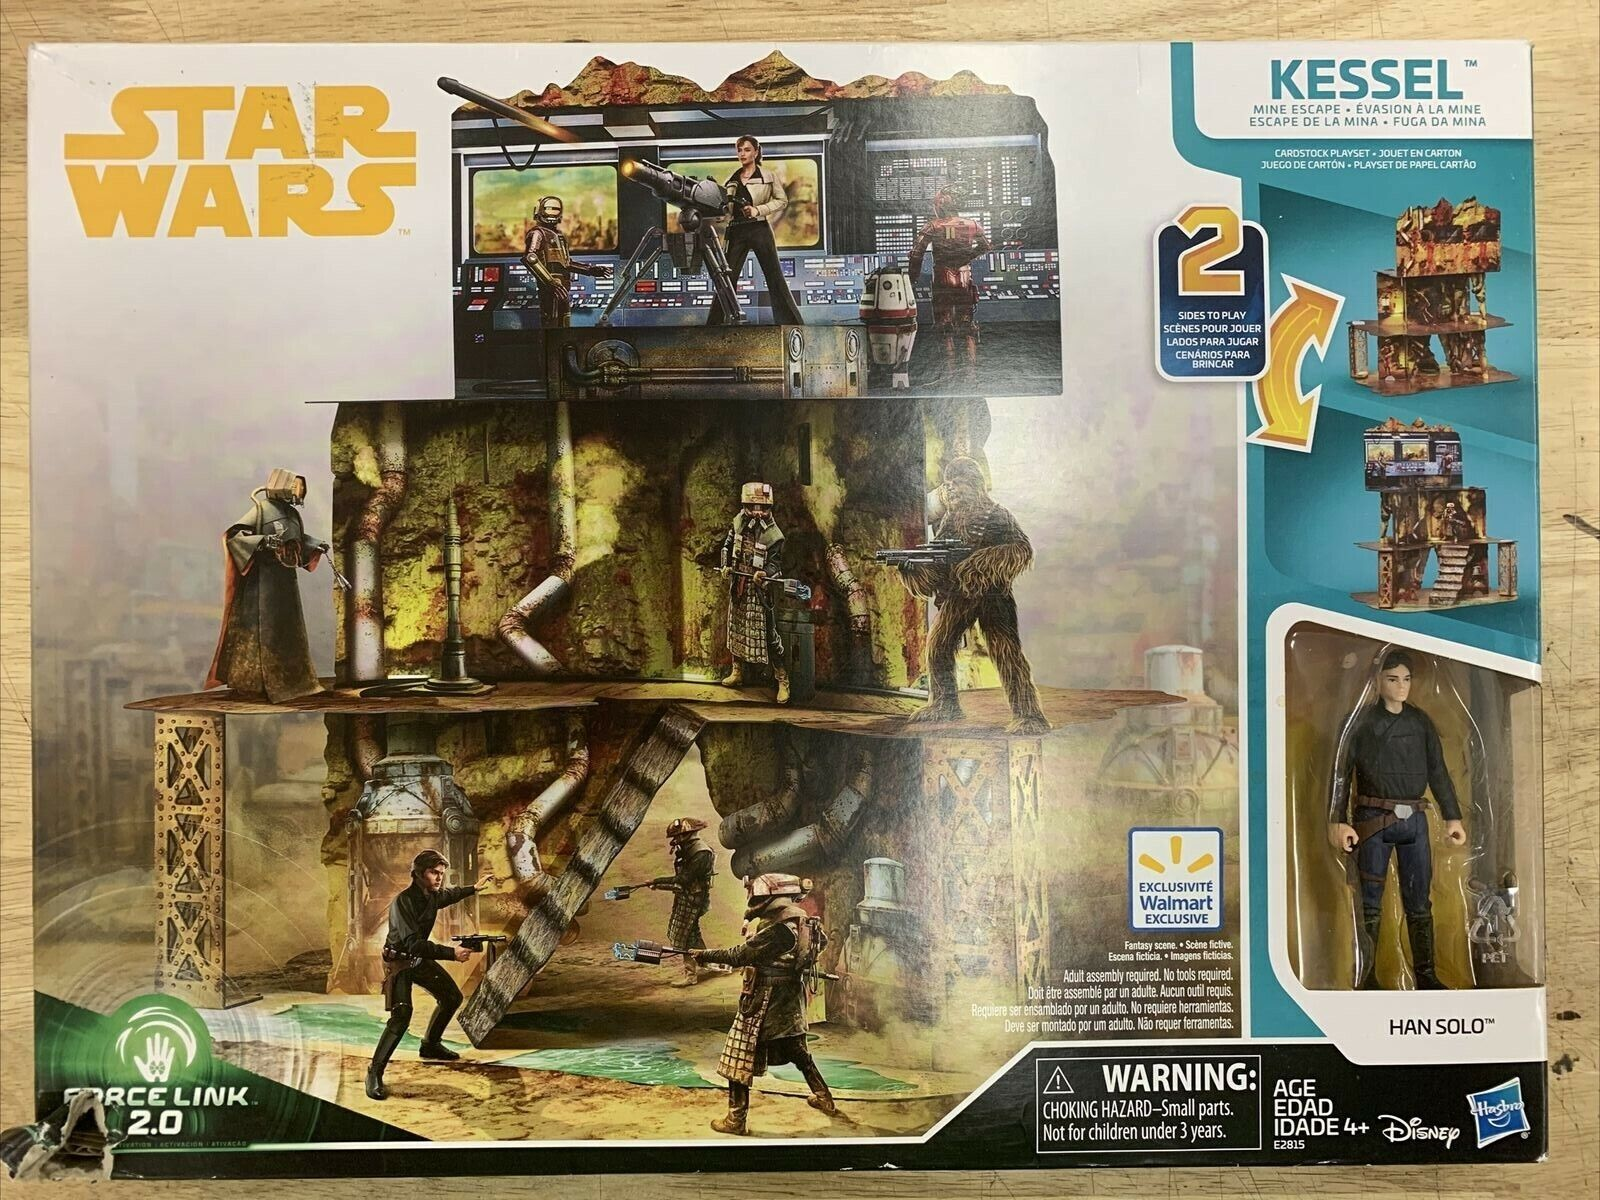 New In Box Star Wars Kessel Mine Escape Playset With Han Solo Figure - $19.88